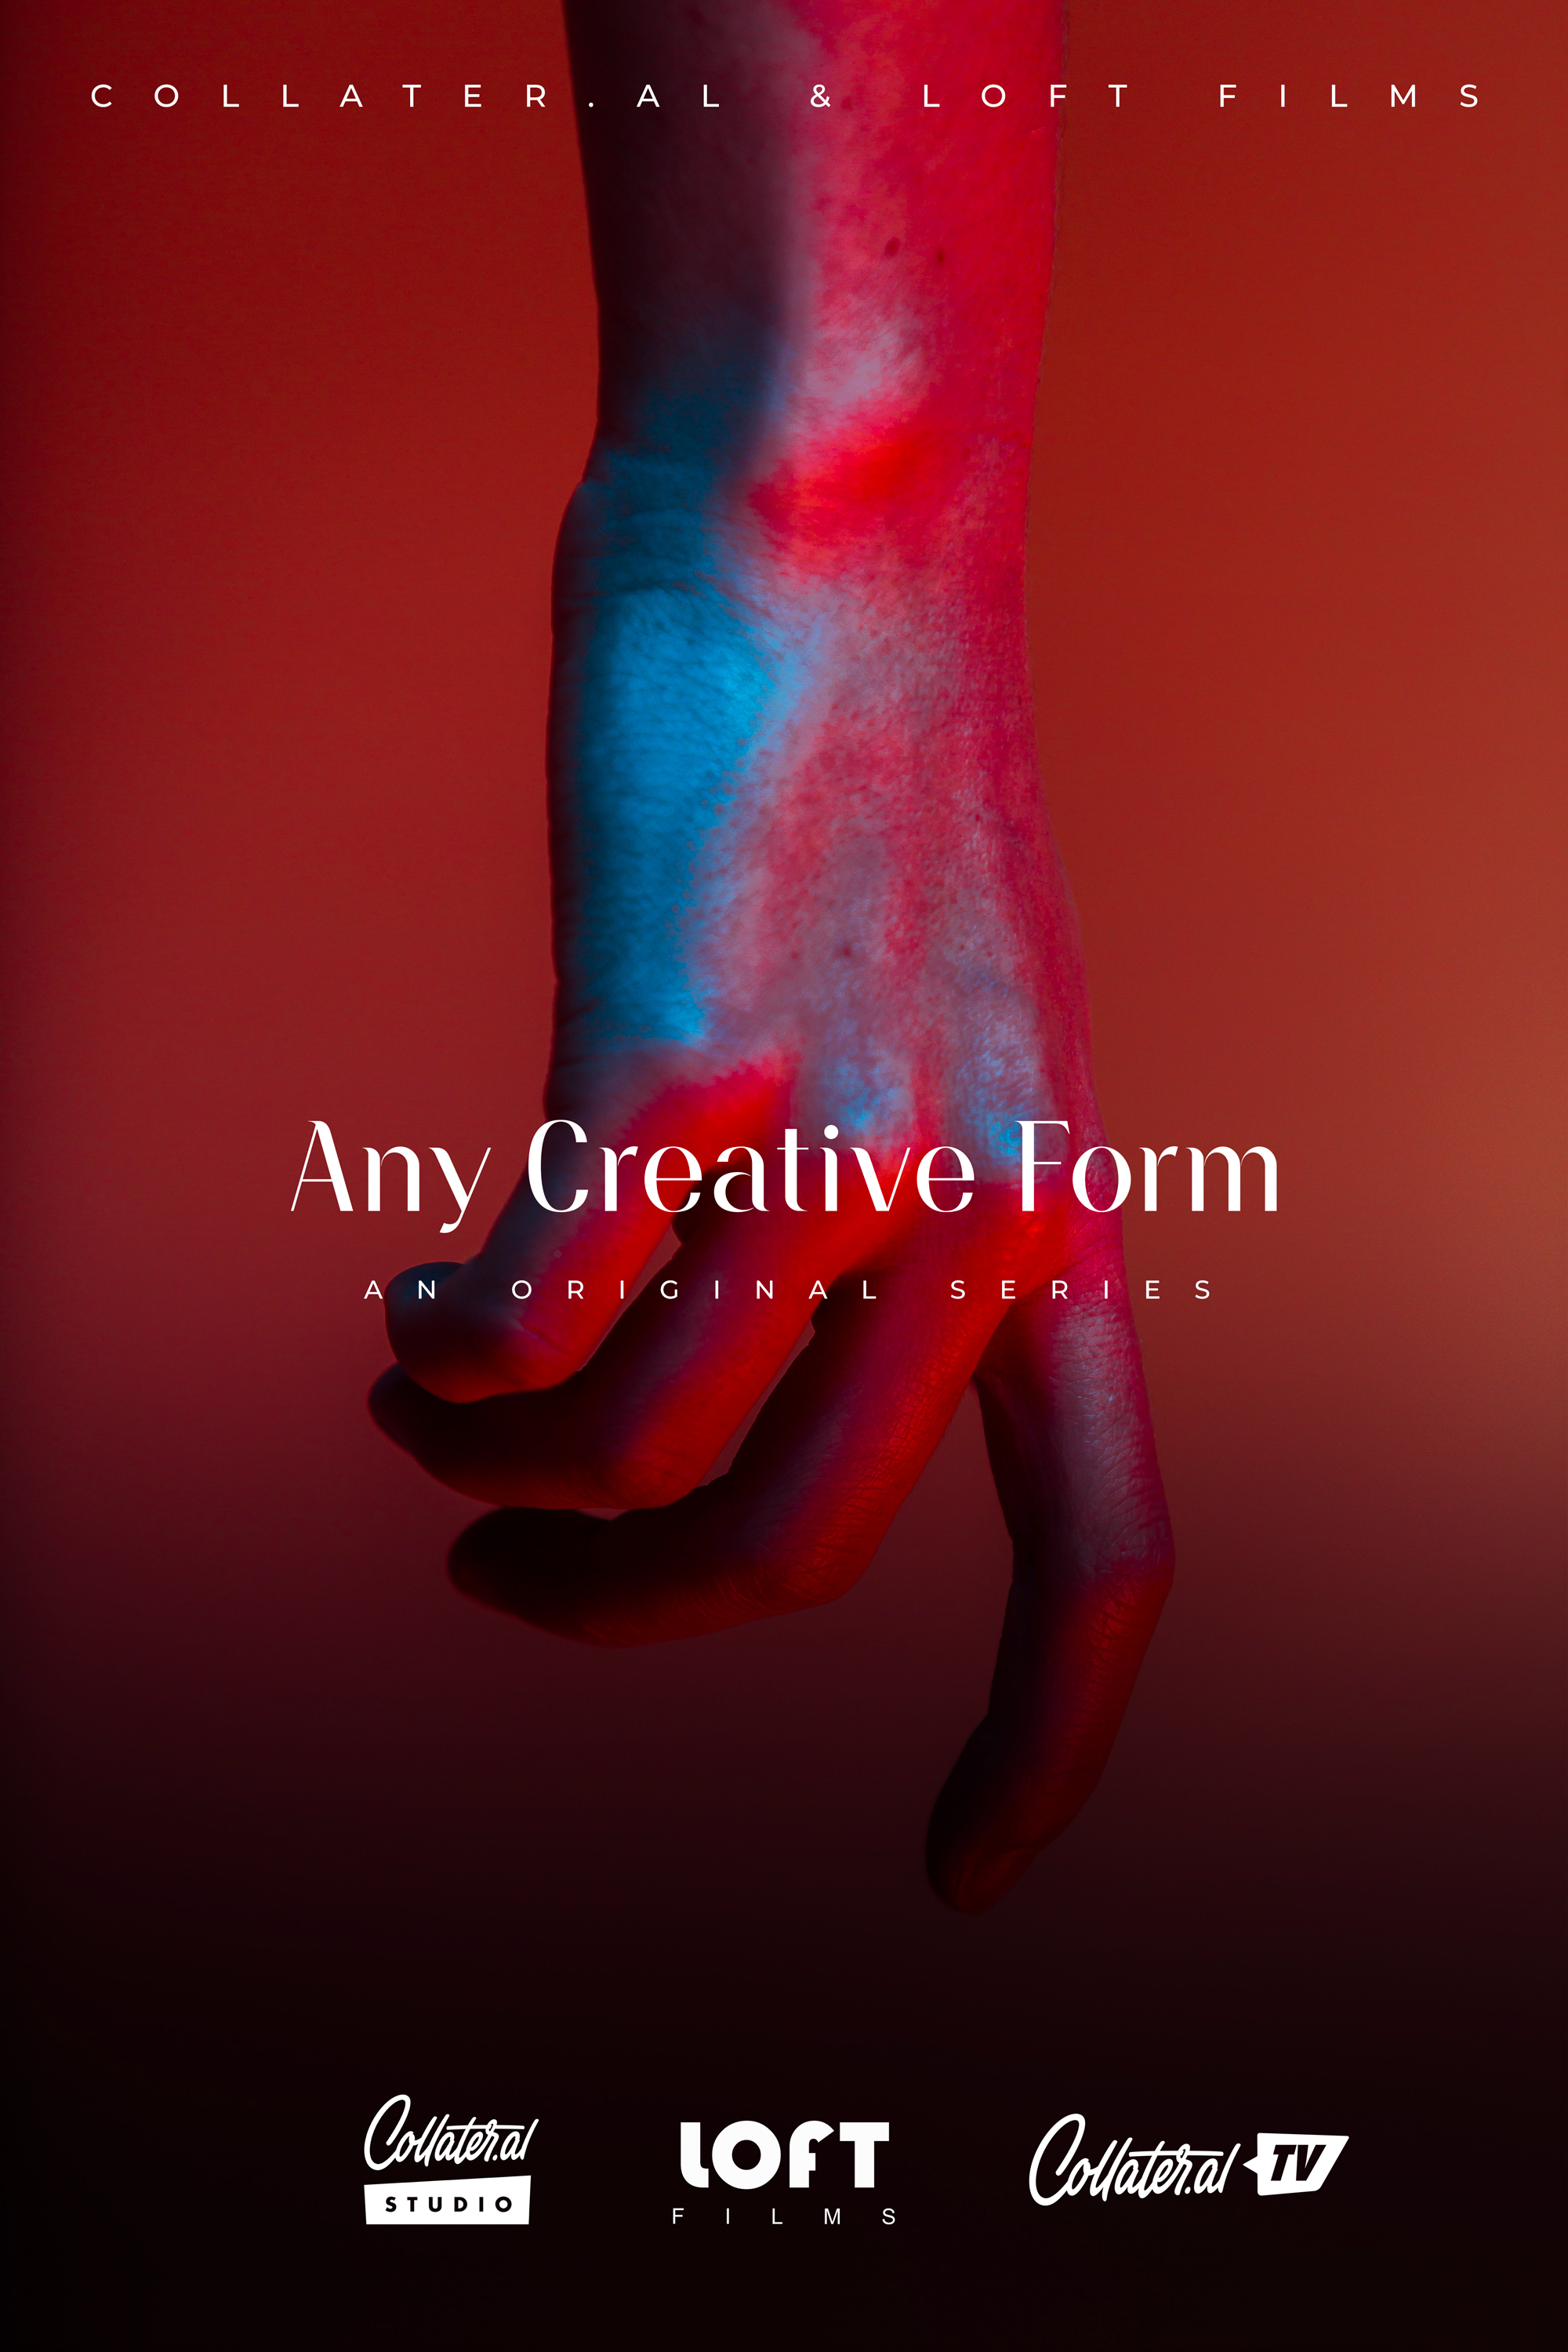 Any Creative Form, la prima docu-serie firmata Collater.al Studio